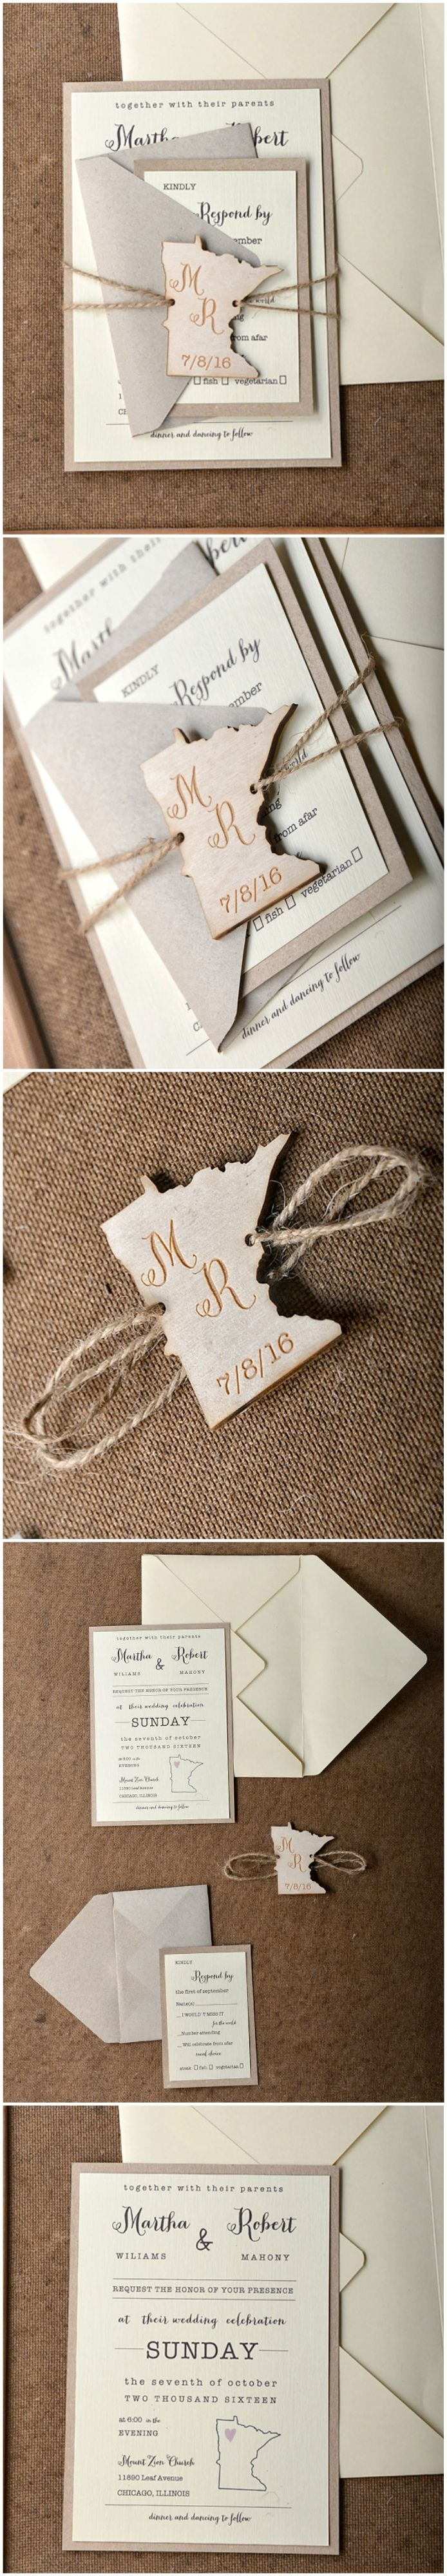 Eco Rustic Wedding Invitations with map tag #rustic #weddinginvitations #wood #wooden #custom #wood